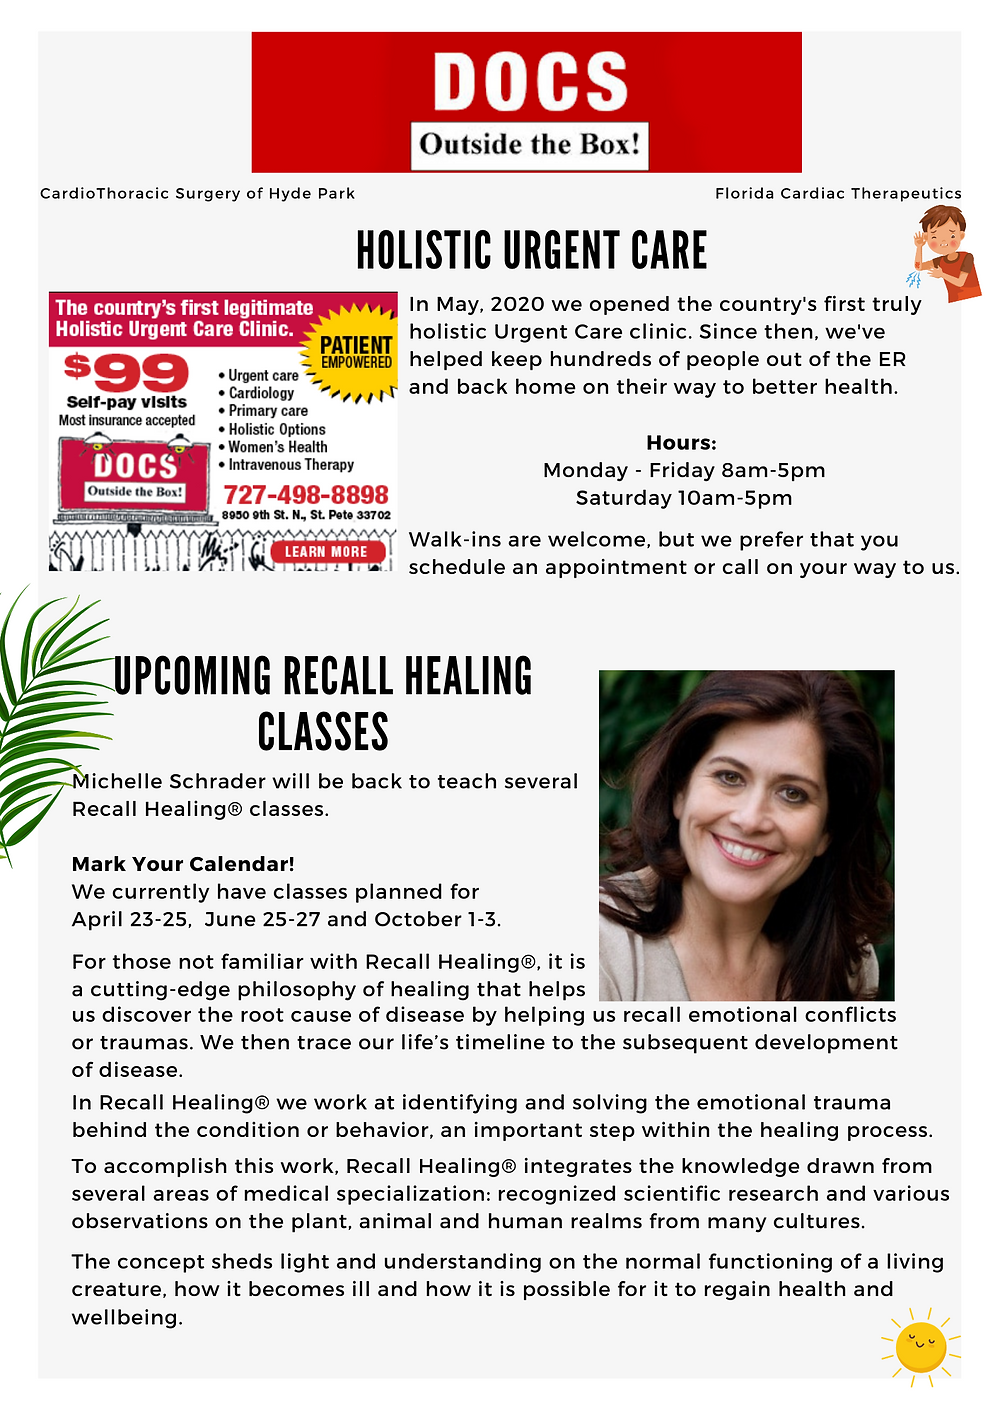 text about how we expanded our holistic urgent care clinic. Text about upcoming recall healing classes at DOCS